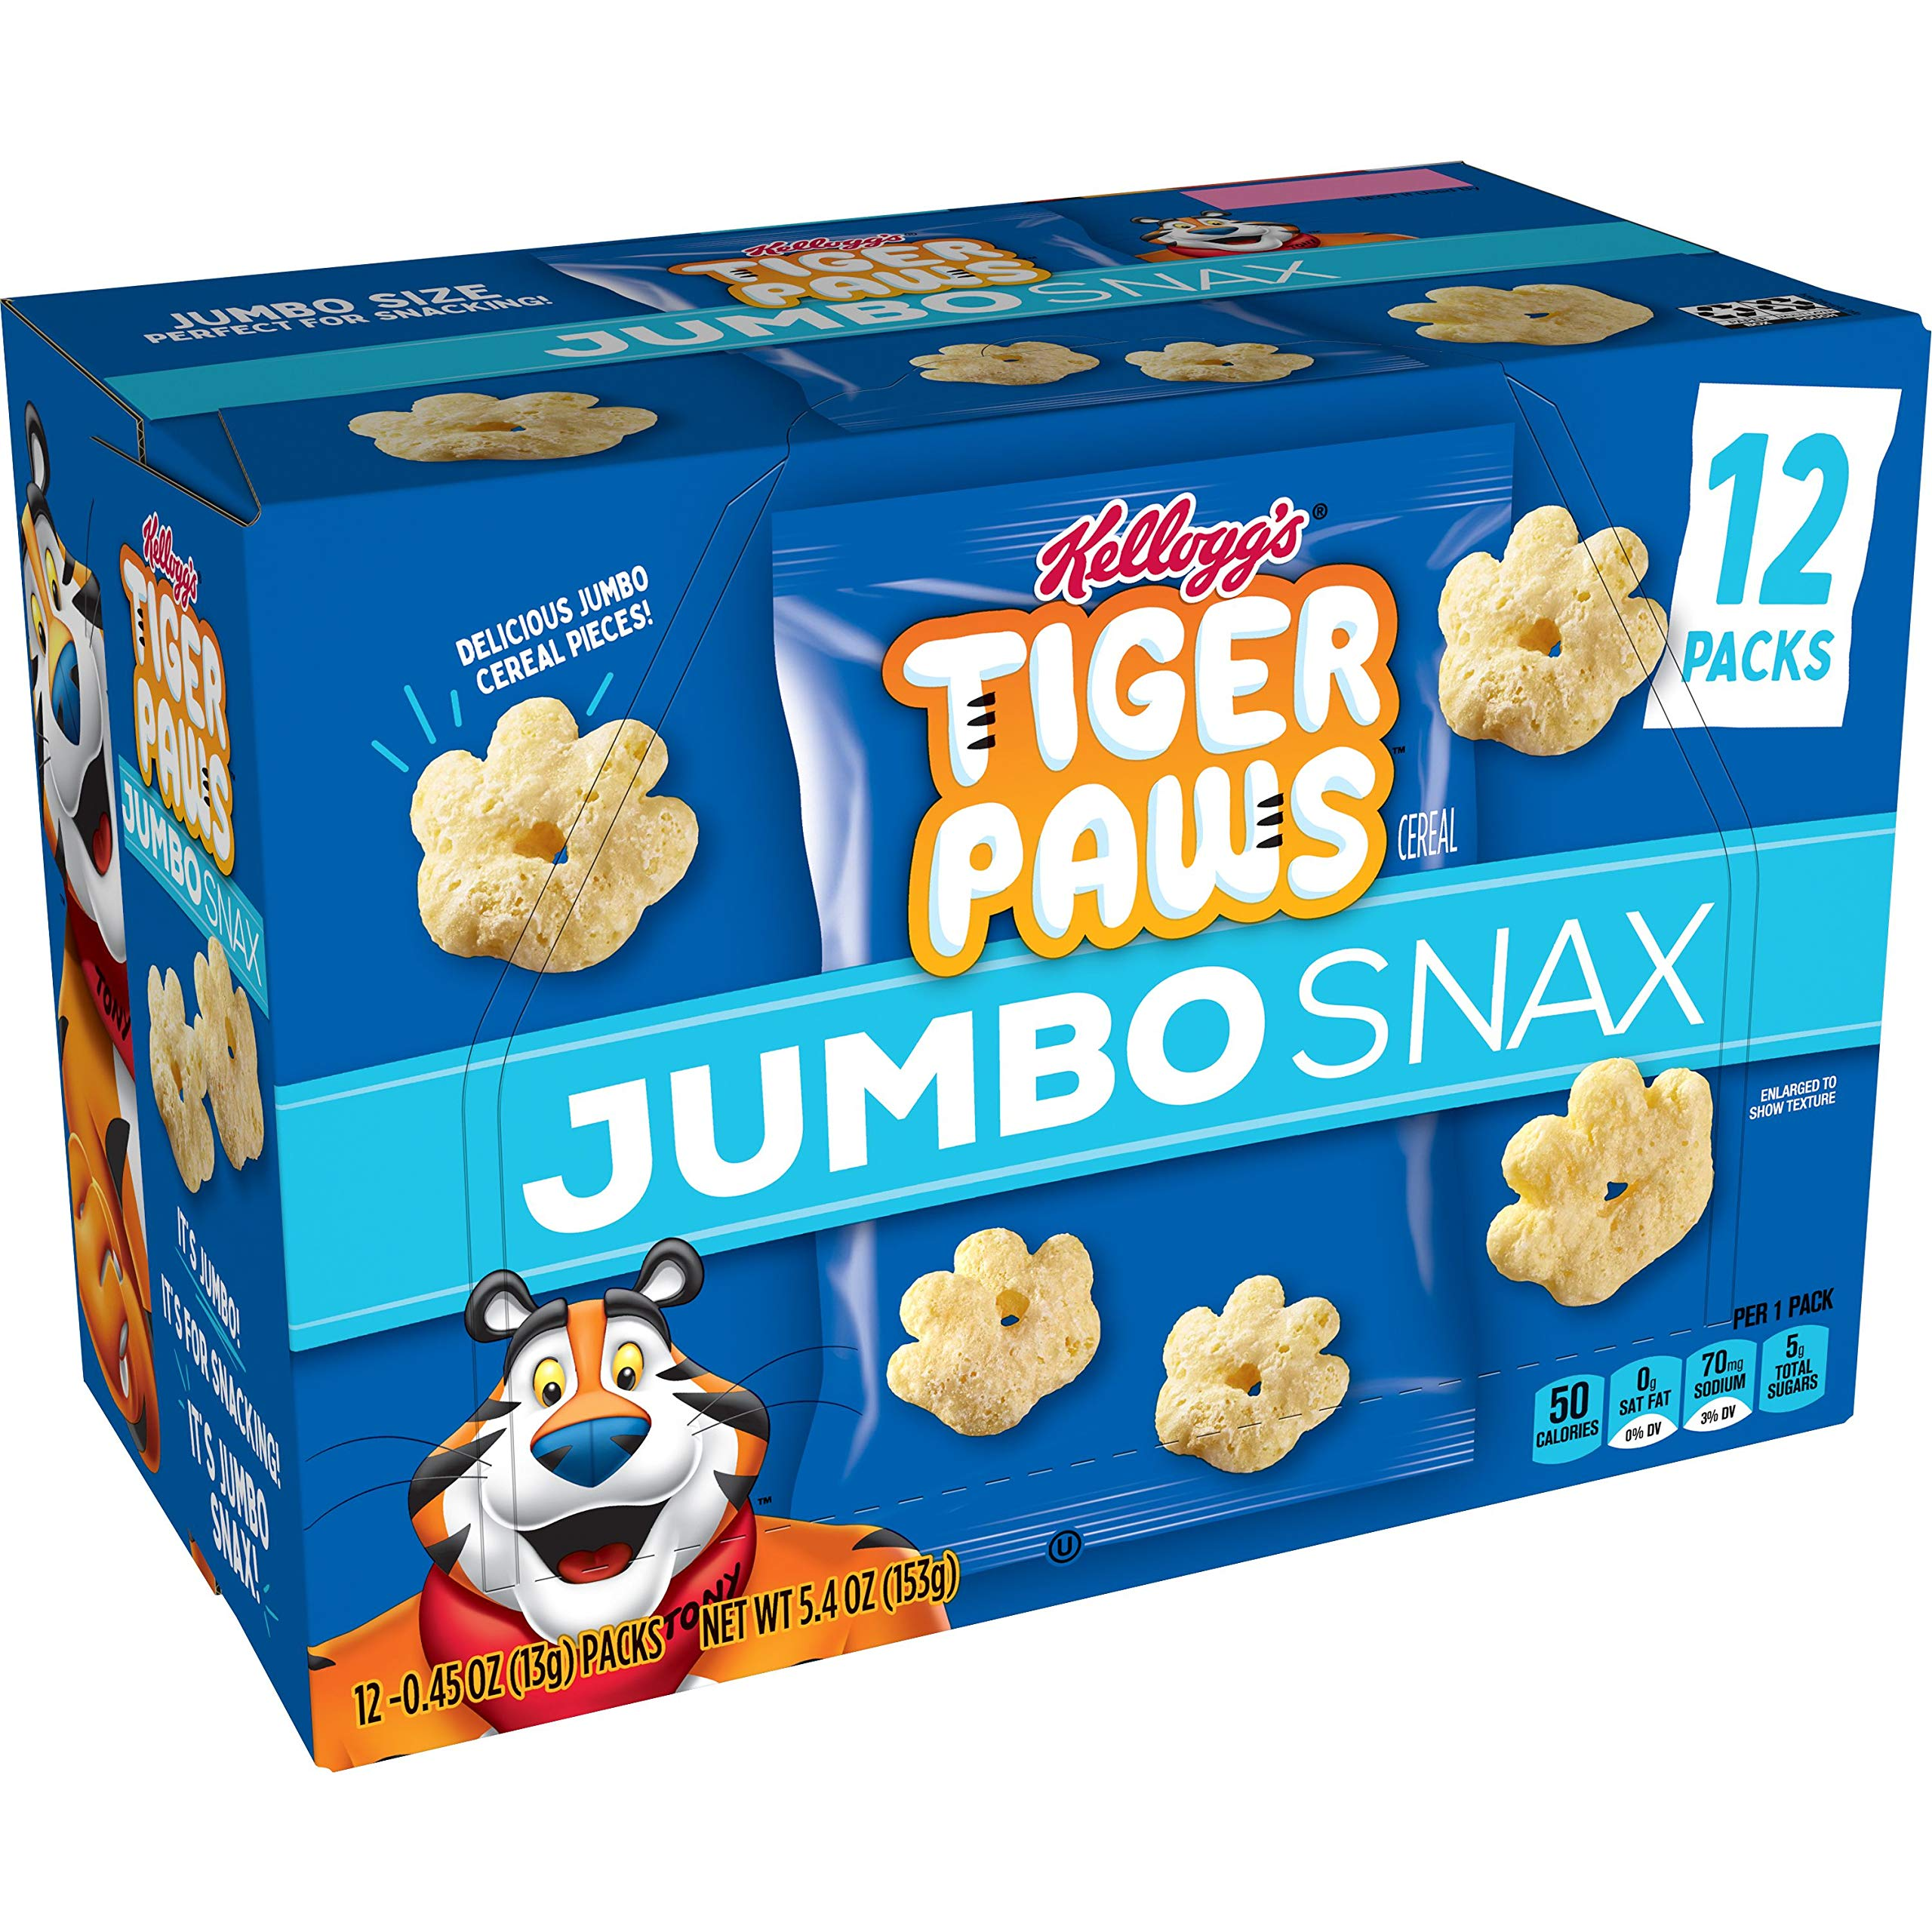 Kellogg's Tiger Paws Jumbo Snax, Cereal Snacks, Original, On the Go, 12 - .45 oz bags (Pack of 4, 48 count total)